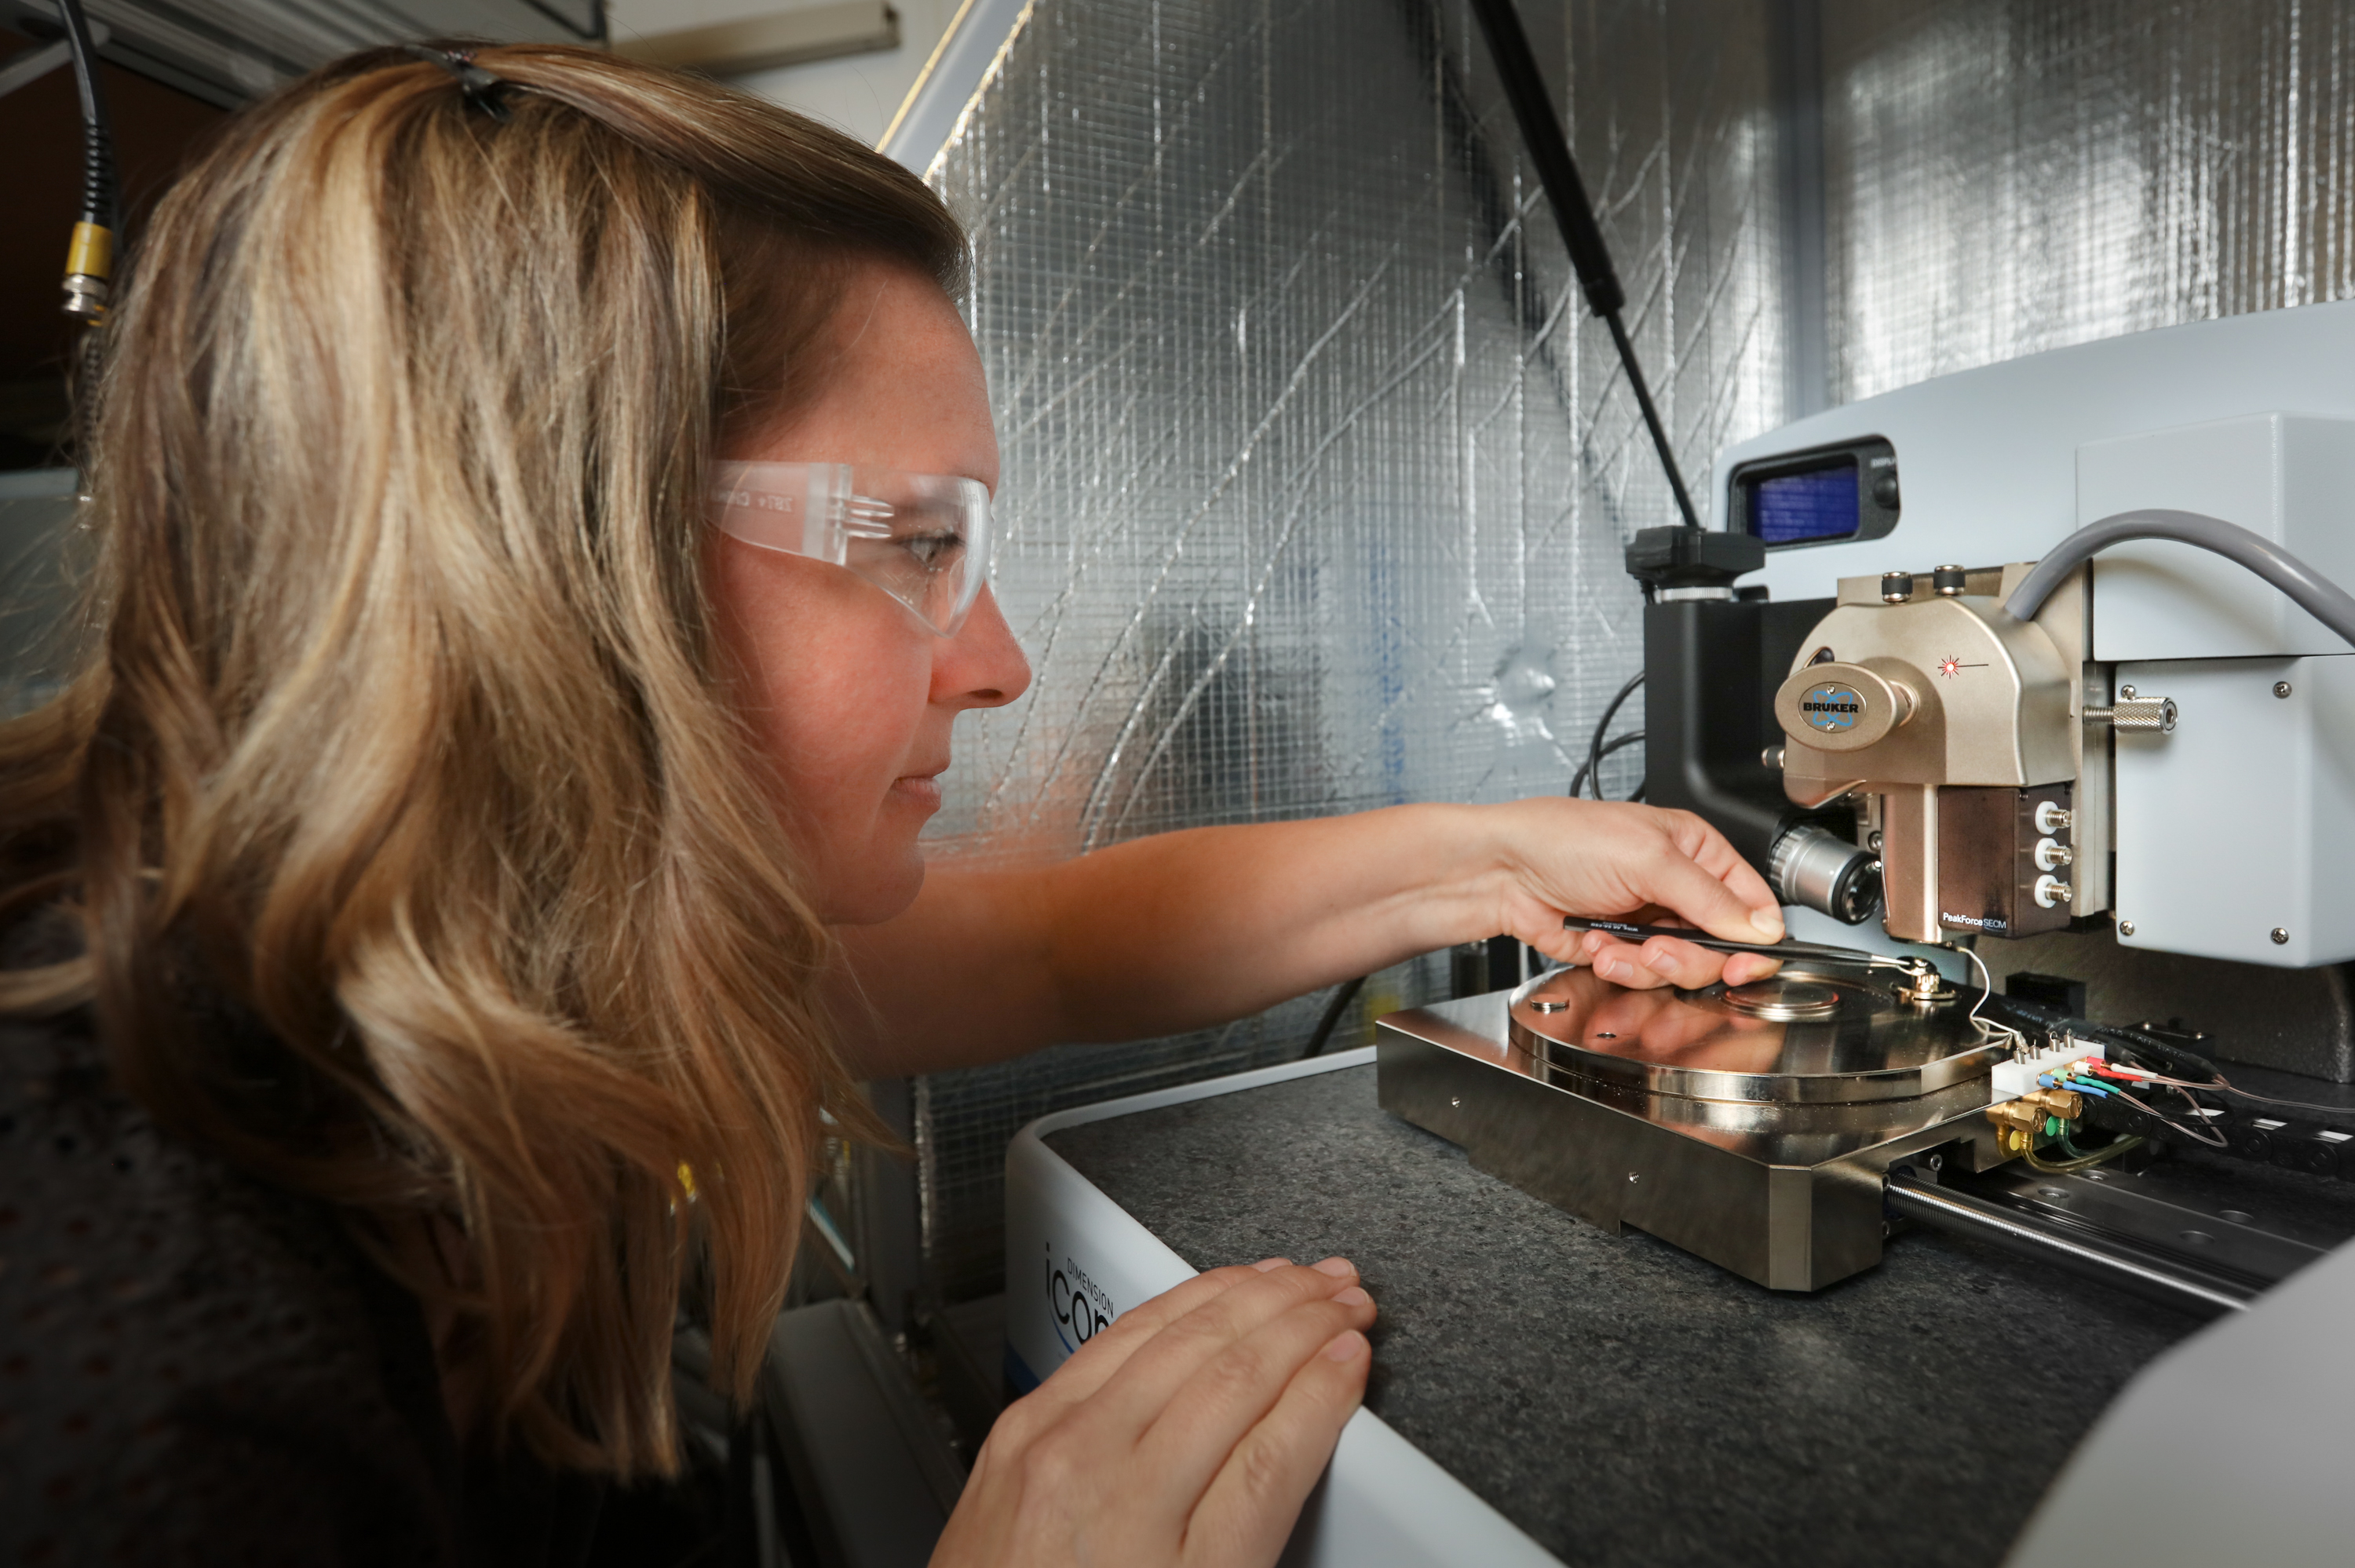 ORNL scientist Nina Balke uses scanning probe microscopy to explore materials' nanoscale properties and push boundaries in nanomaterials for energy applications.